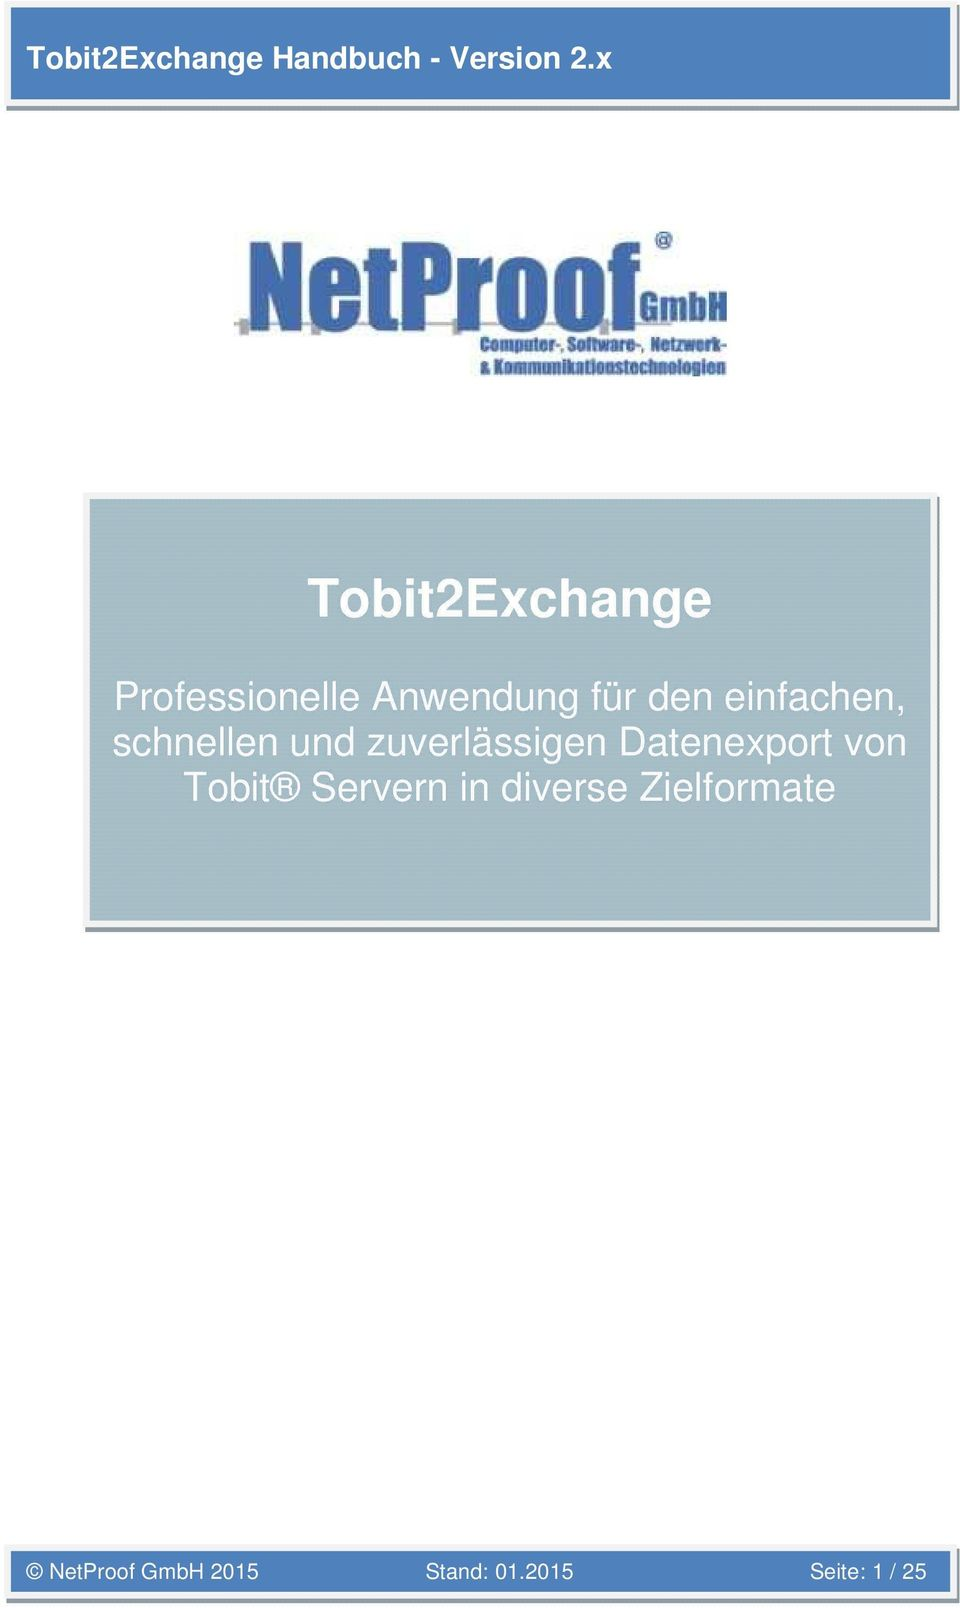 Datenexport von Tobit Servern in diverse